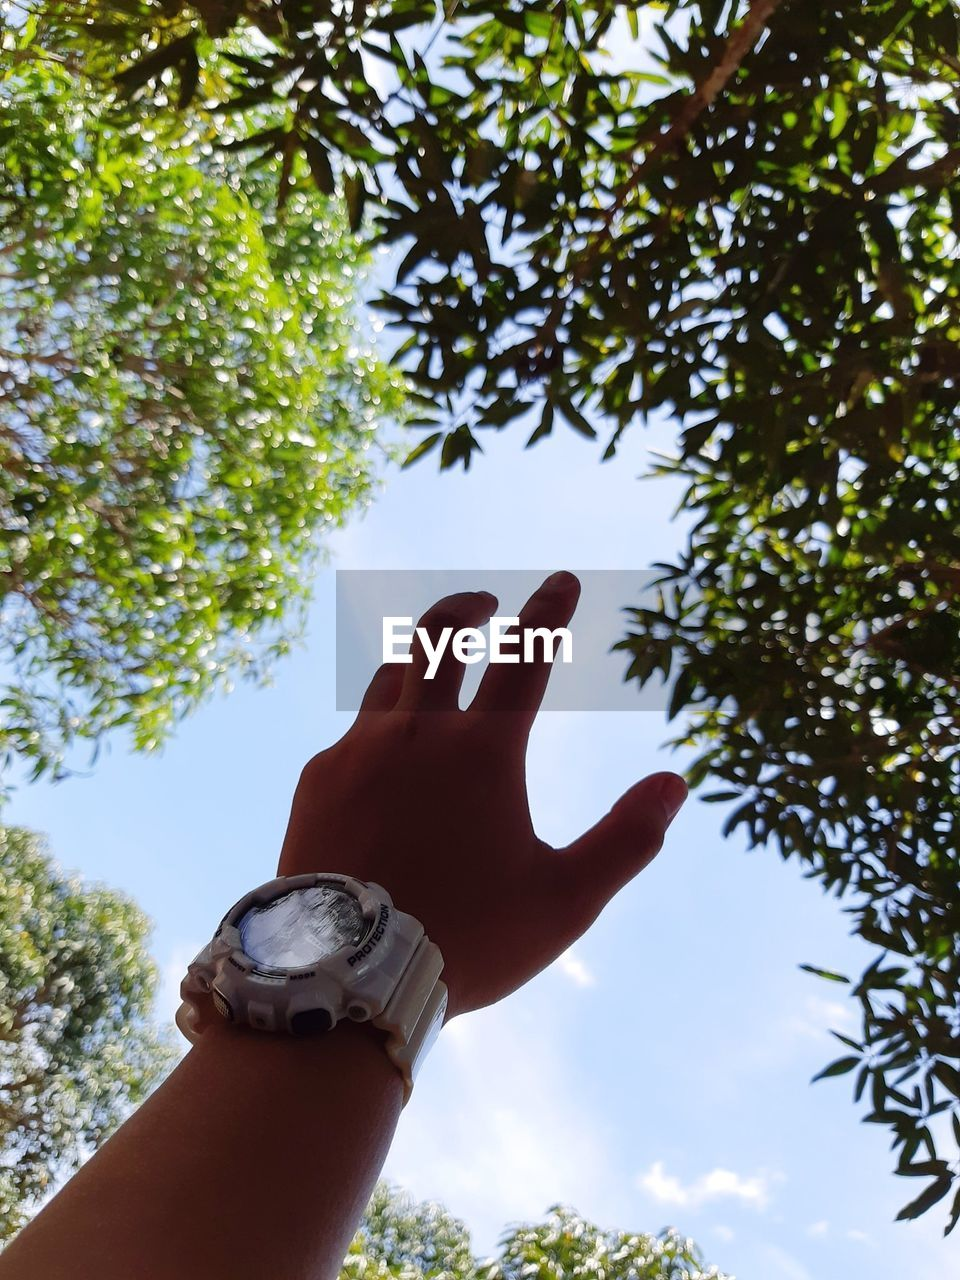 human hand, tree, hand, human body part, plant, low angle view, sky, nature, real people, one person, finger, day, body part, human finger, personal perspective, unrecognizable person, growth, outdoors, lifestyles, human limb